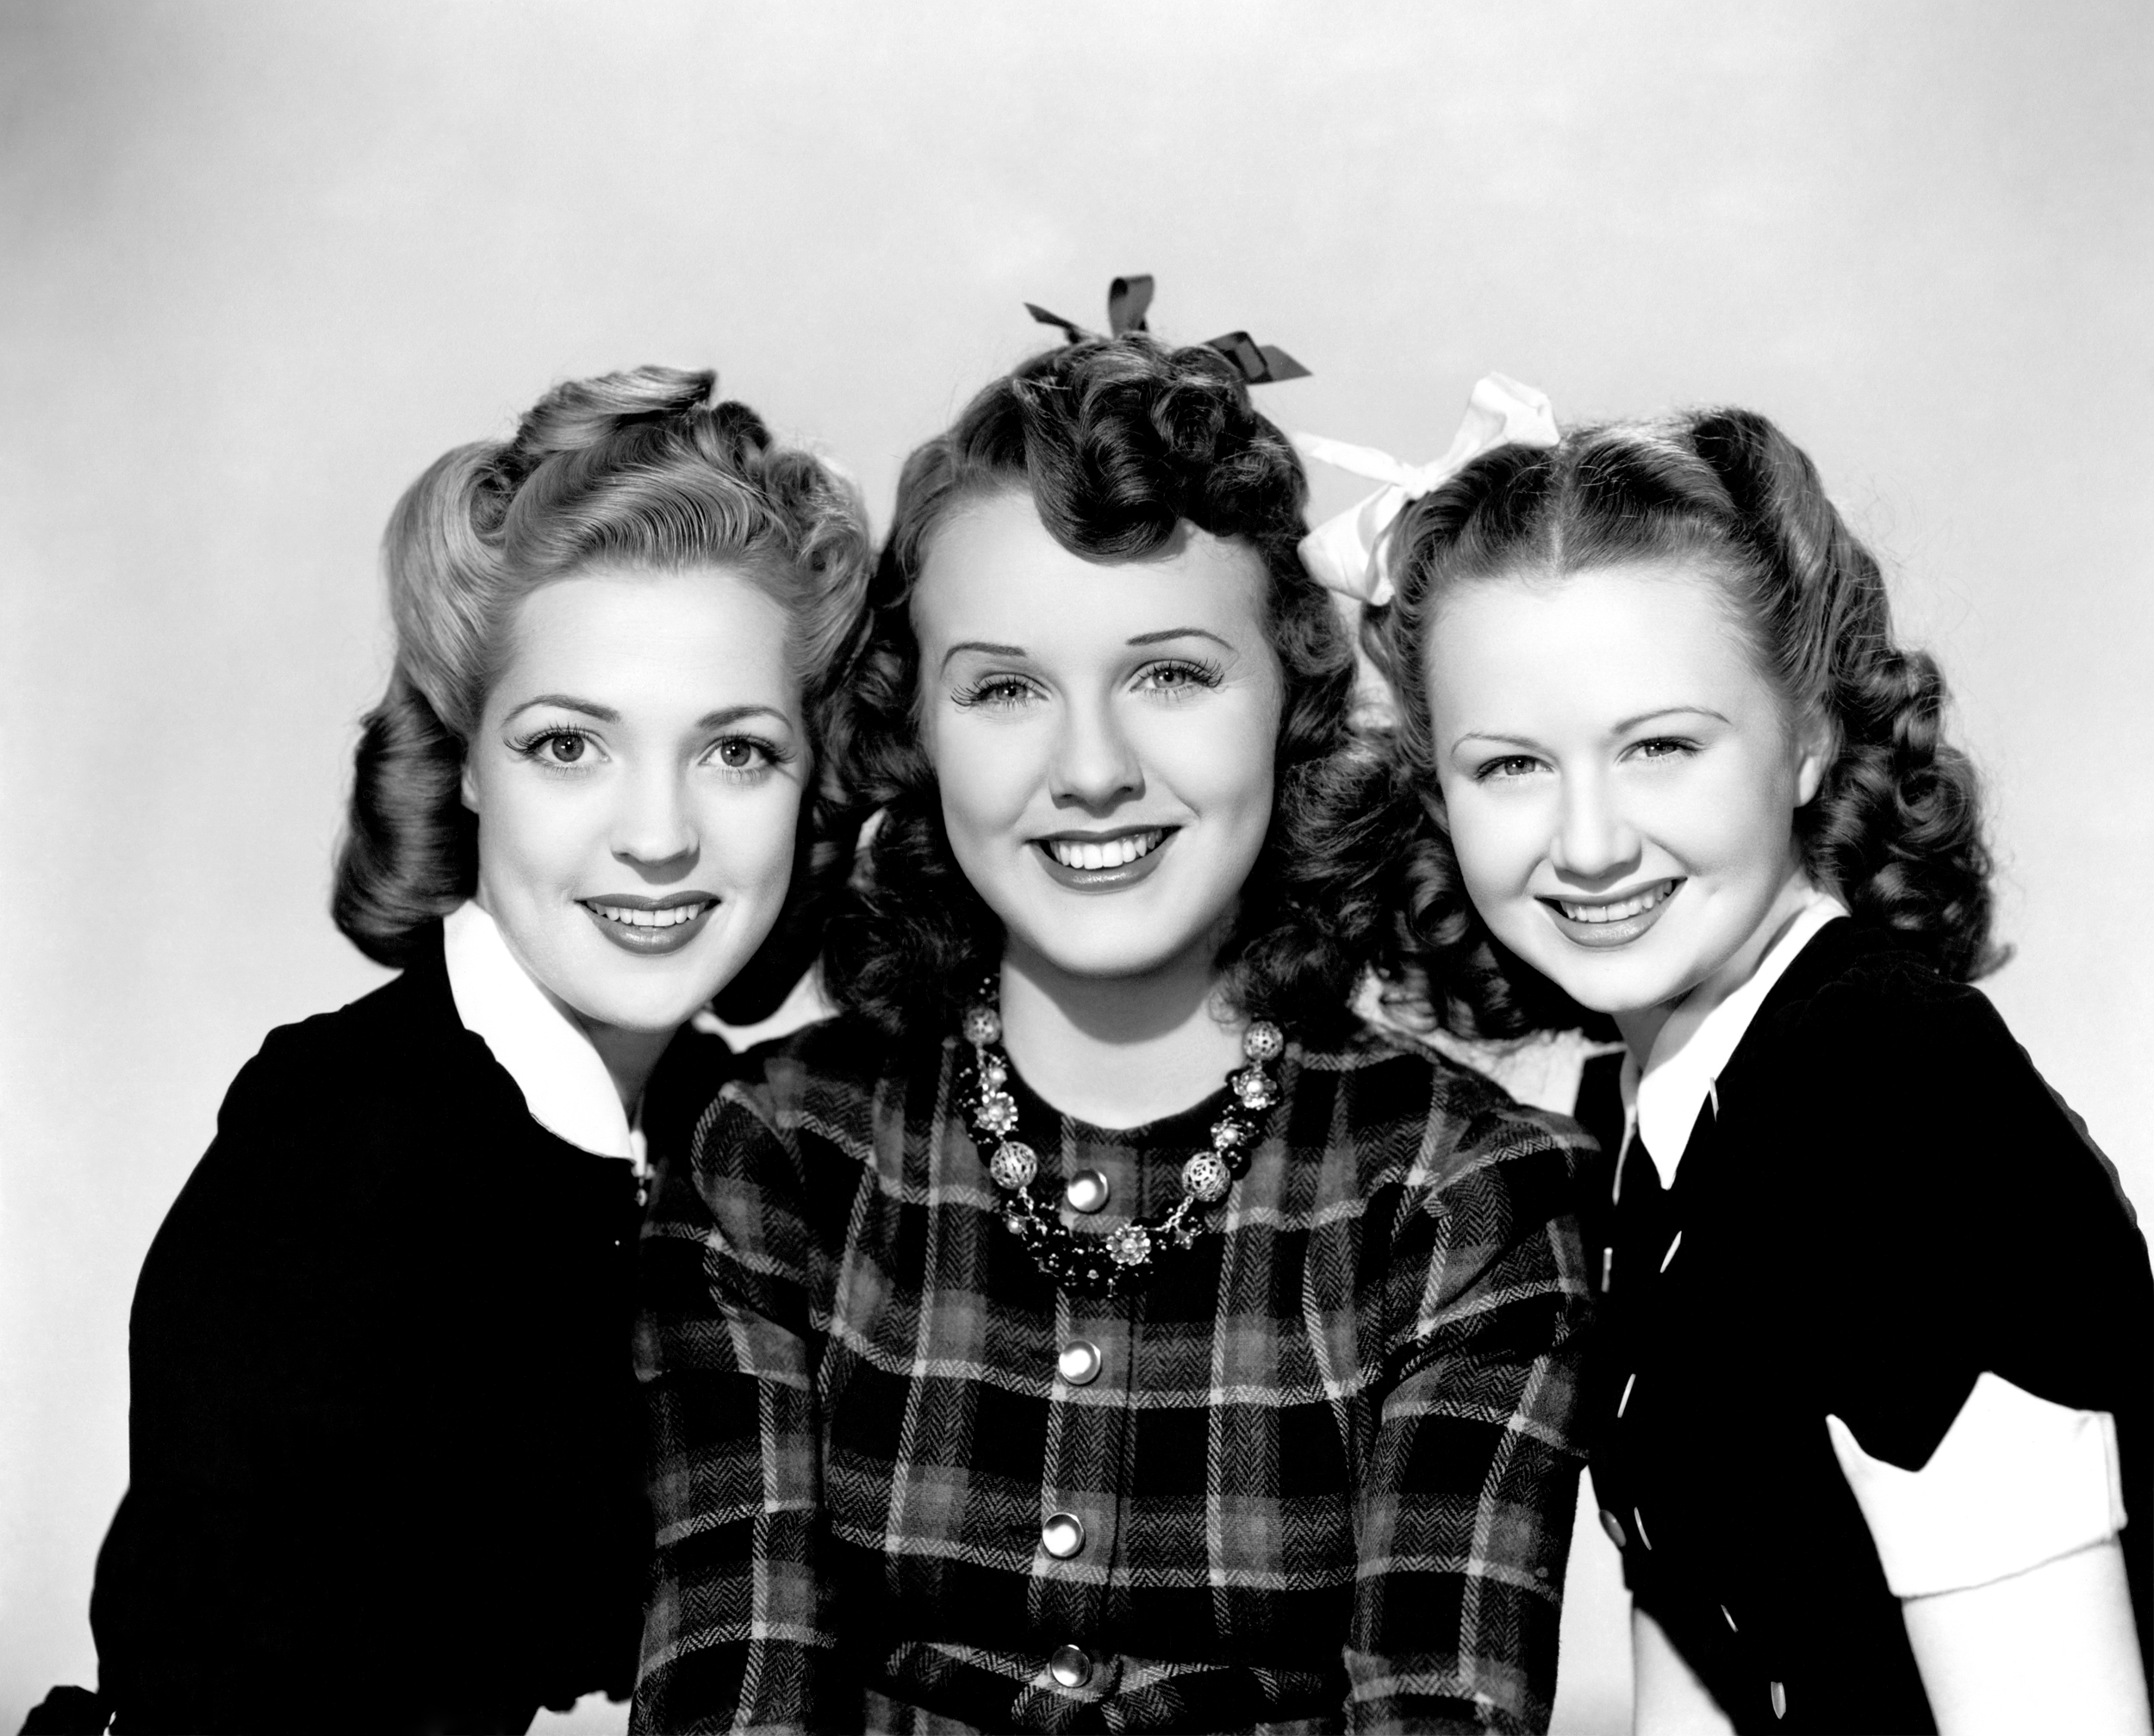 durbin girls In three smart girls, many of the gestures that are done by deanna were taught to her by henry koster he also had to have her ham it up a little bit to make her more of an actress, because she wasn't ready yet for subtlety.